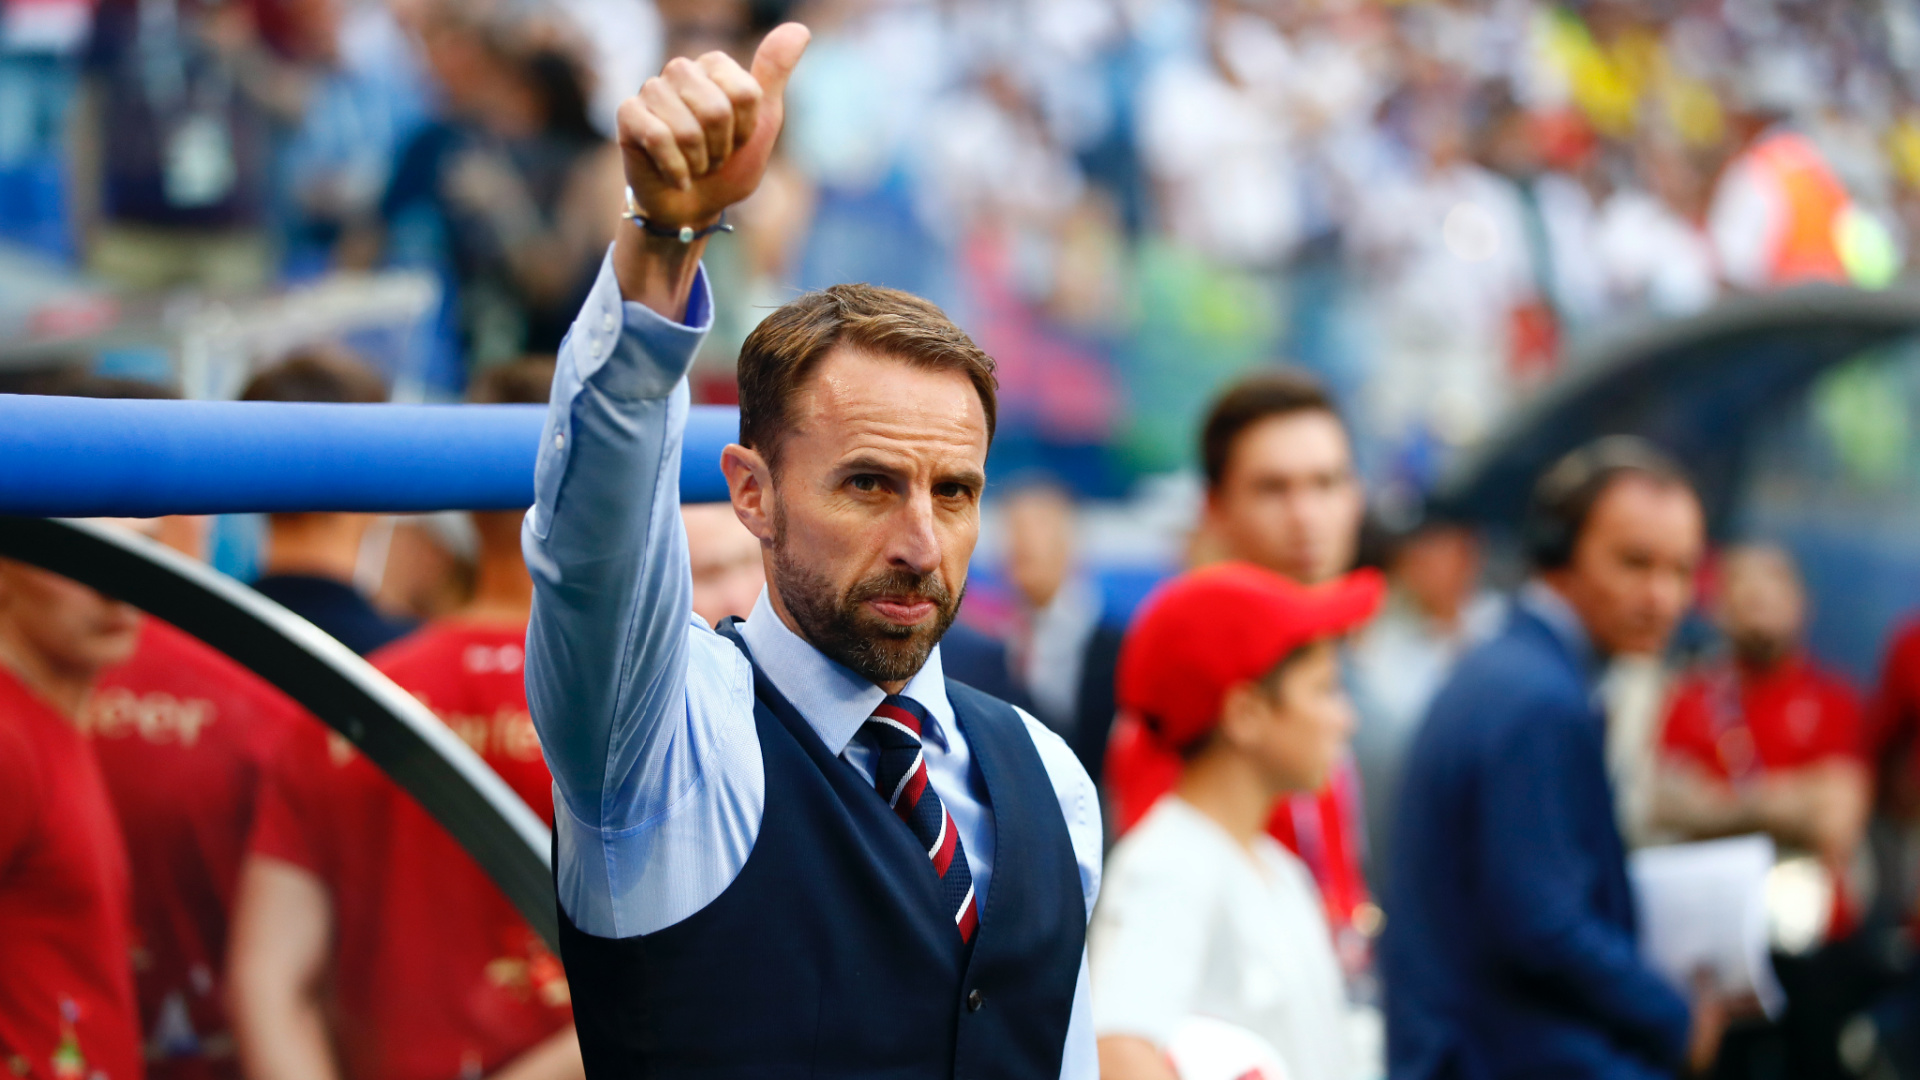 Complete guide to Euro 2020: schedule, groups, teams, and cities